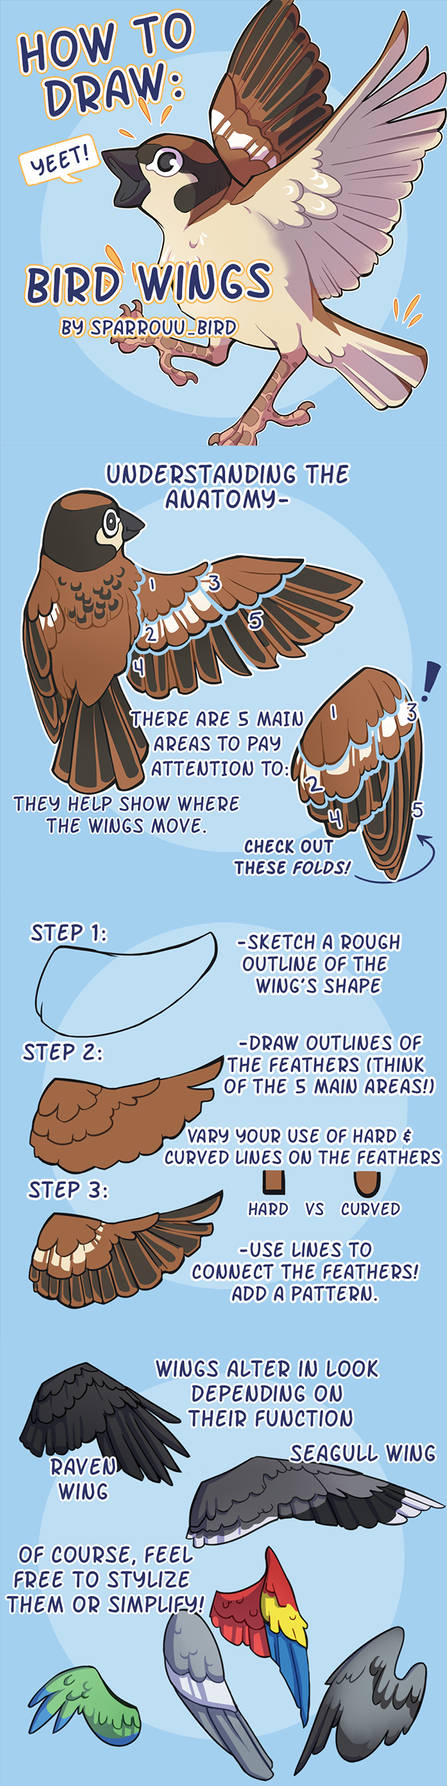 How to Draw Bird Wings